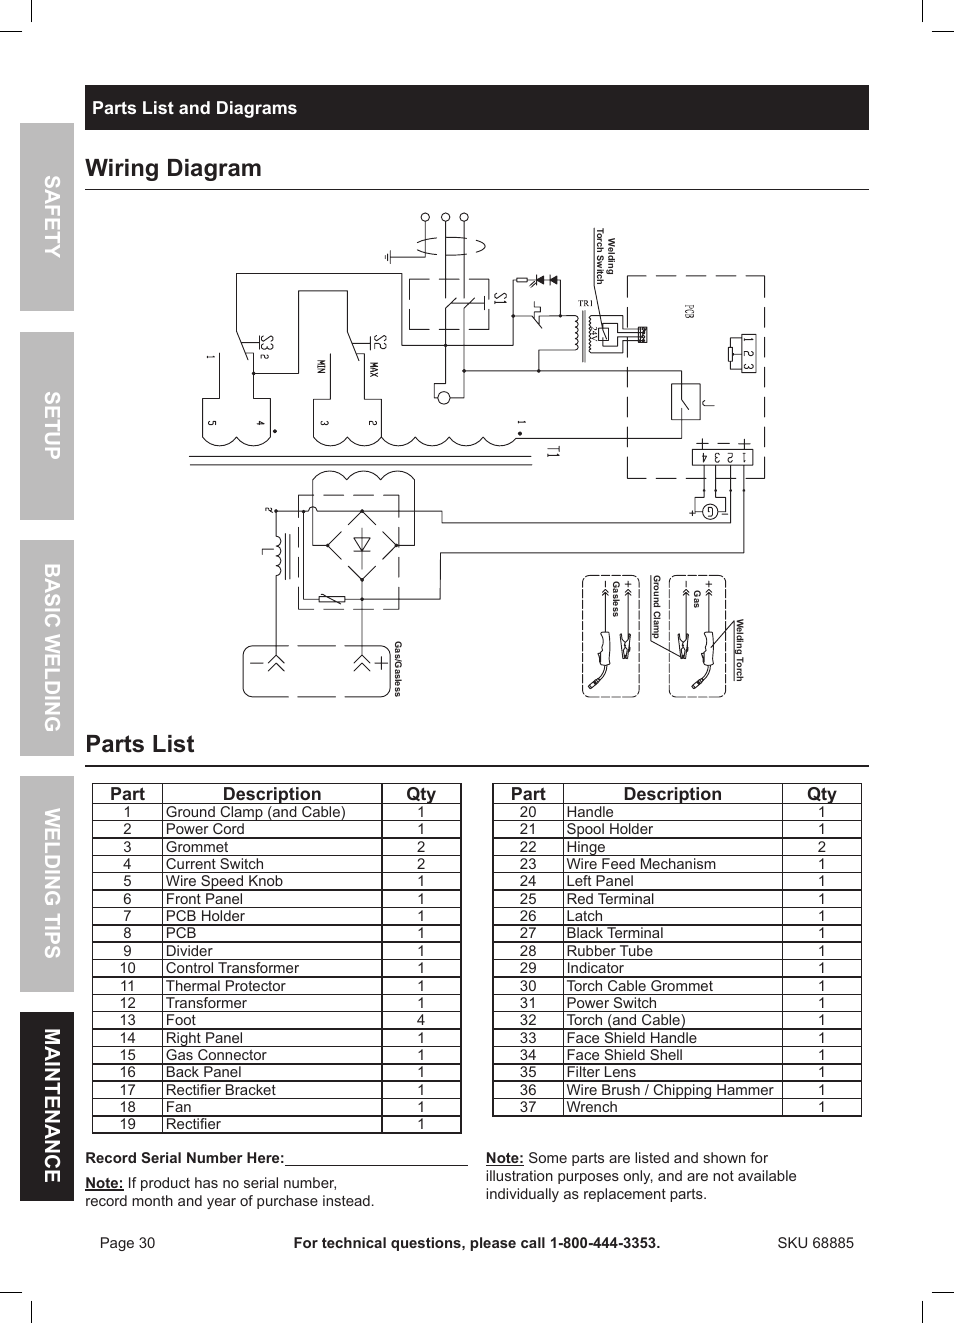 [DIAGRAM] Refrigerator Wiring Diagram Parts FULL Version